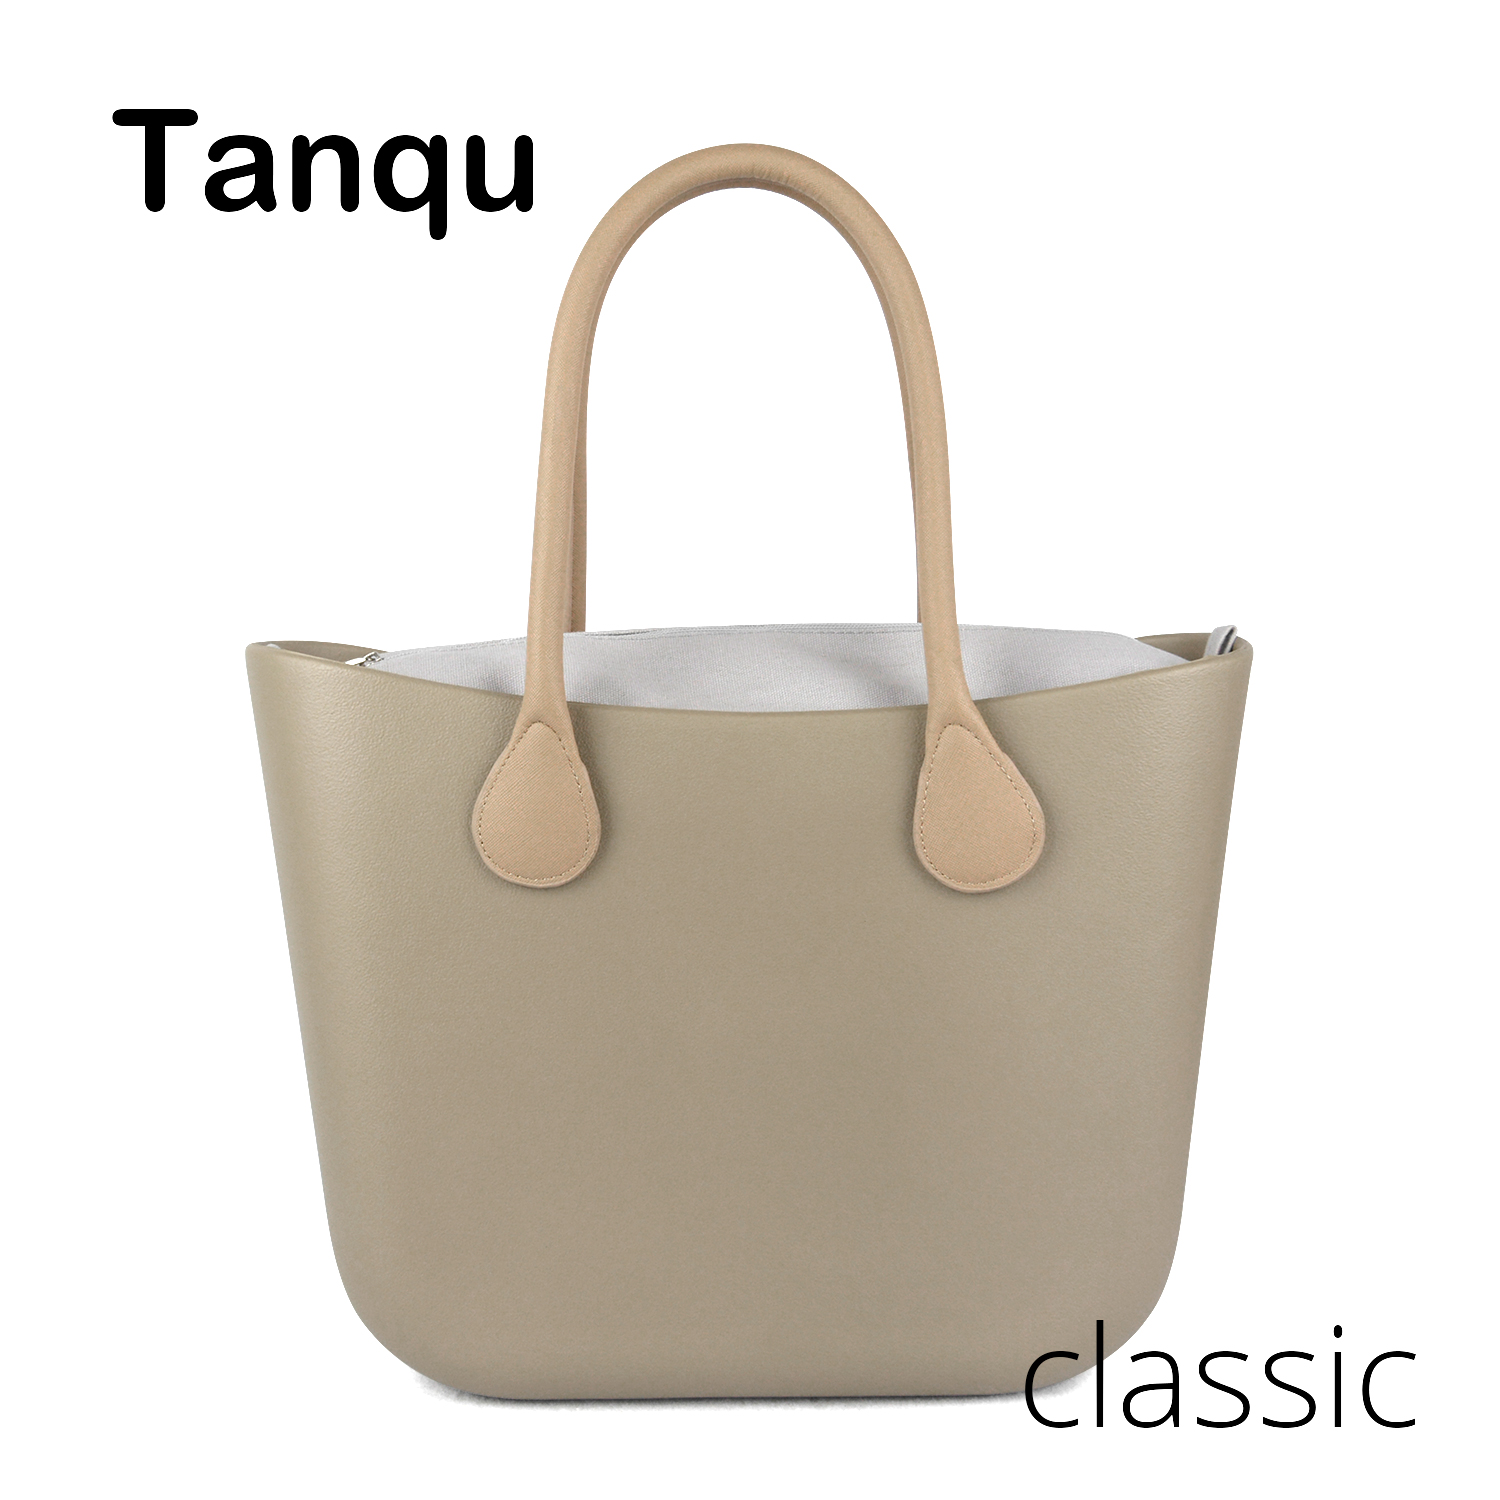 2018 New TANQU Classic EVA Bag with Insert Inner Pocket Colorful Handles EVA Silicon Rubber Waterproof Women Handbag Obag Style2018 New TANQU Classic EVA Bag with Insert Inner Pocket Colorful Handles EVA Silicon Rubber Waterproof Women Handbag Obag Style